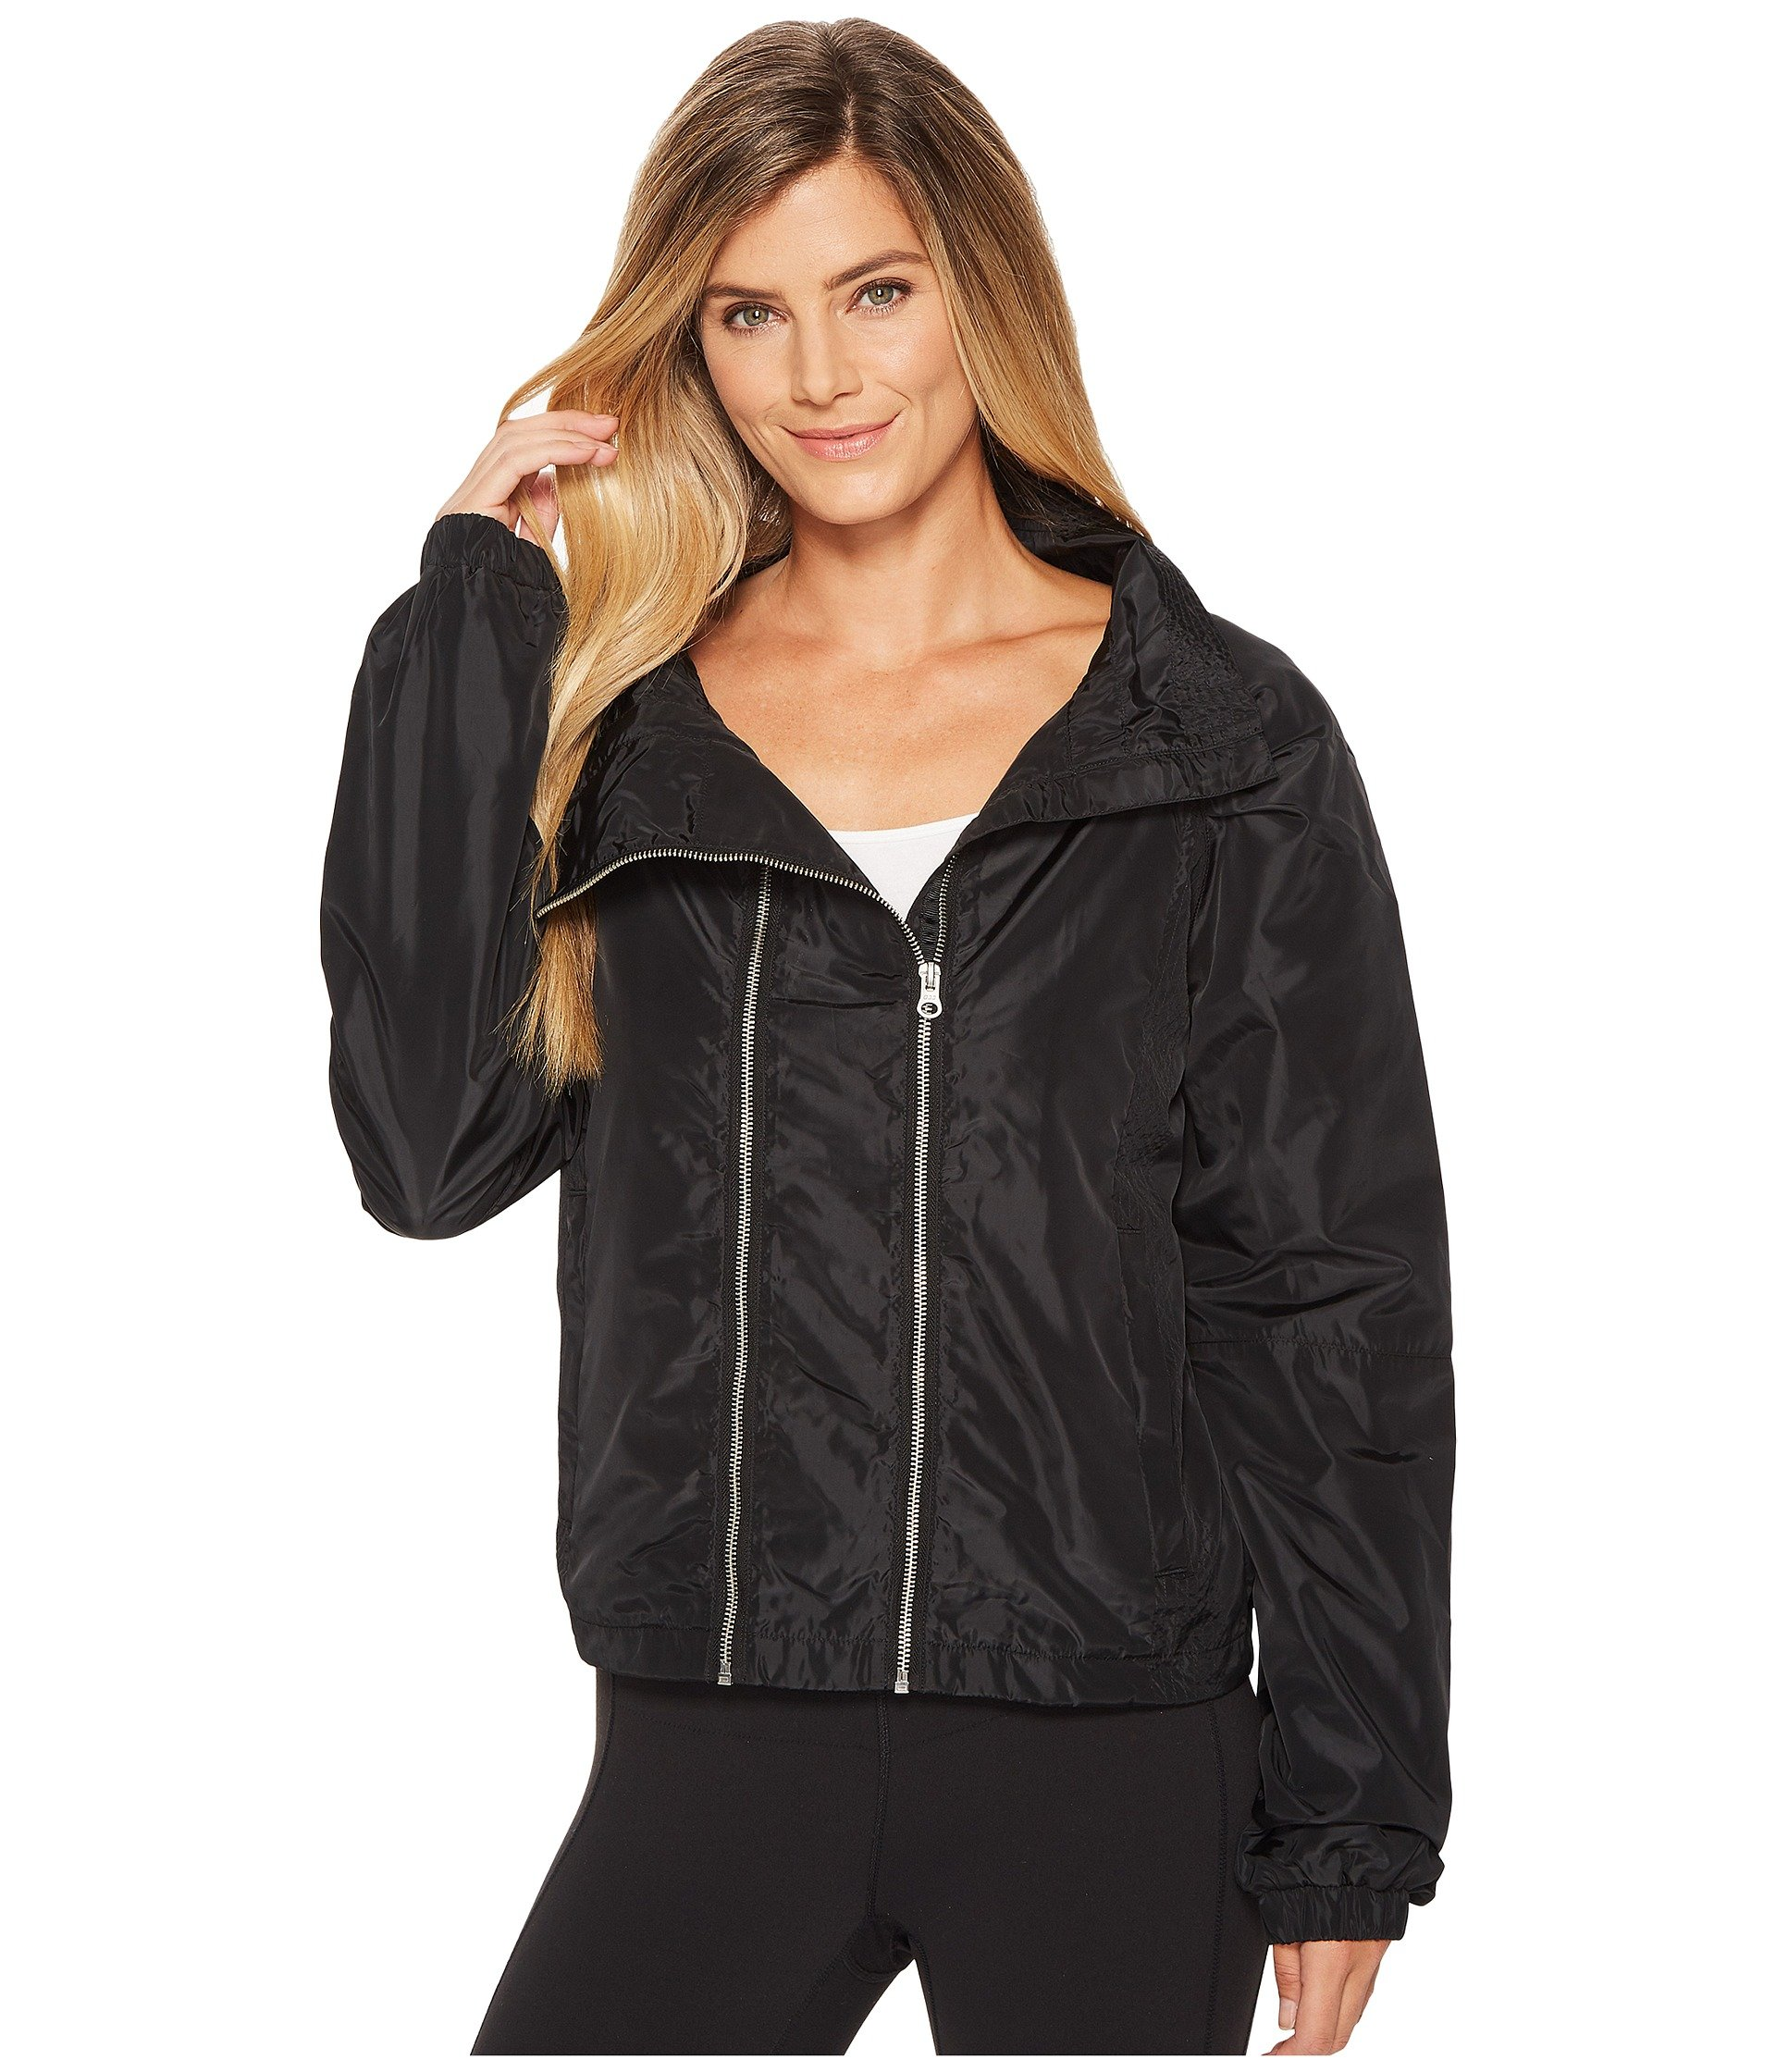 LORNA JANE Authentic Active Jacket, Black